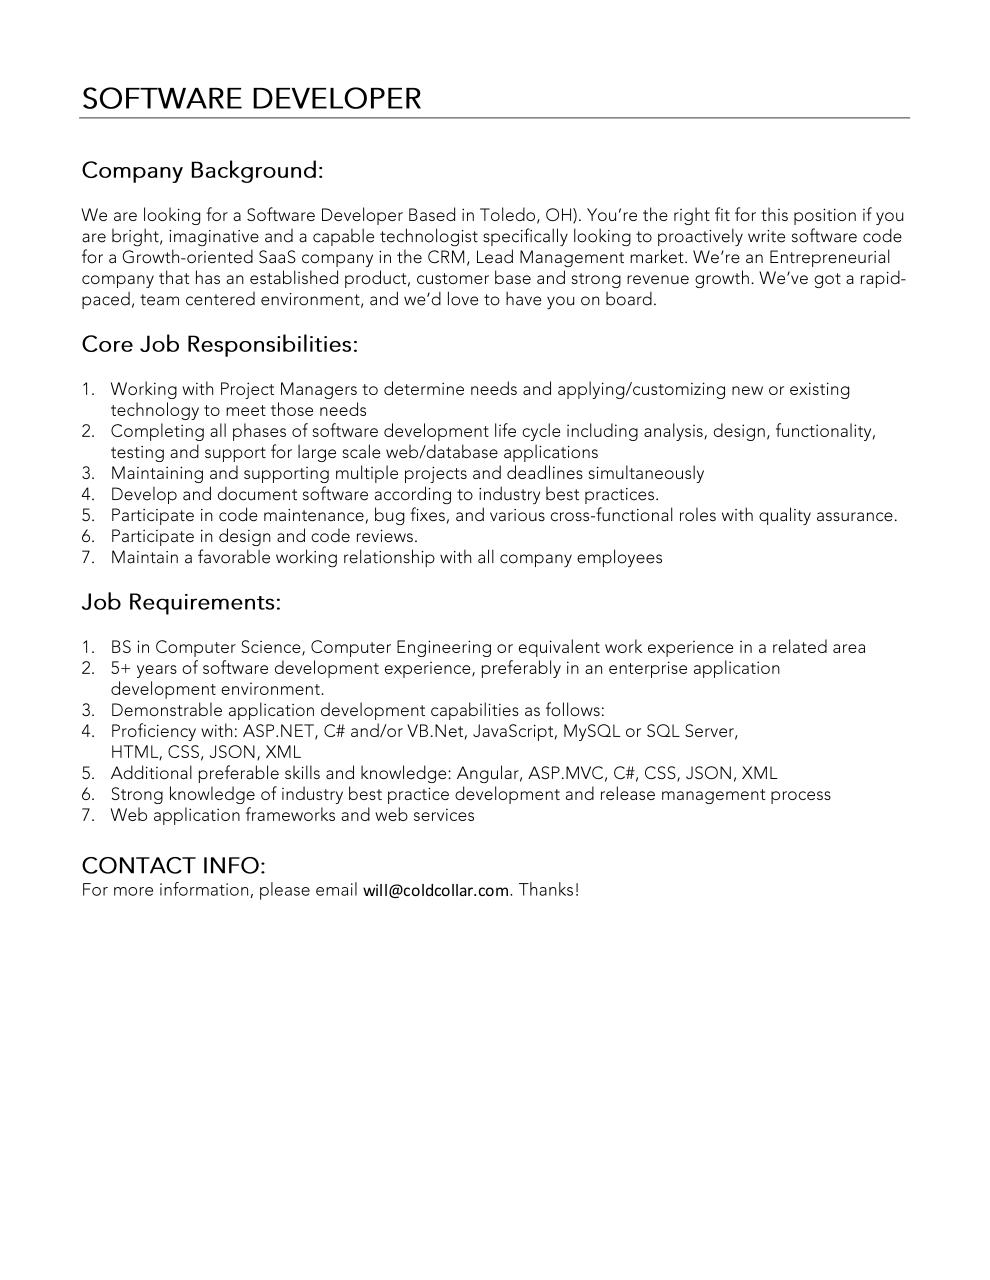 Perfect Document Preview Software Developer Job Description.pdf   Page 1/1